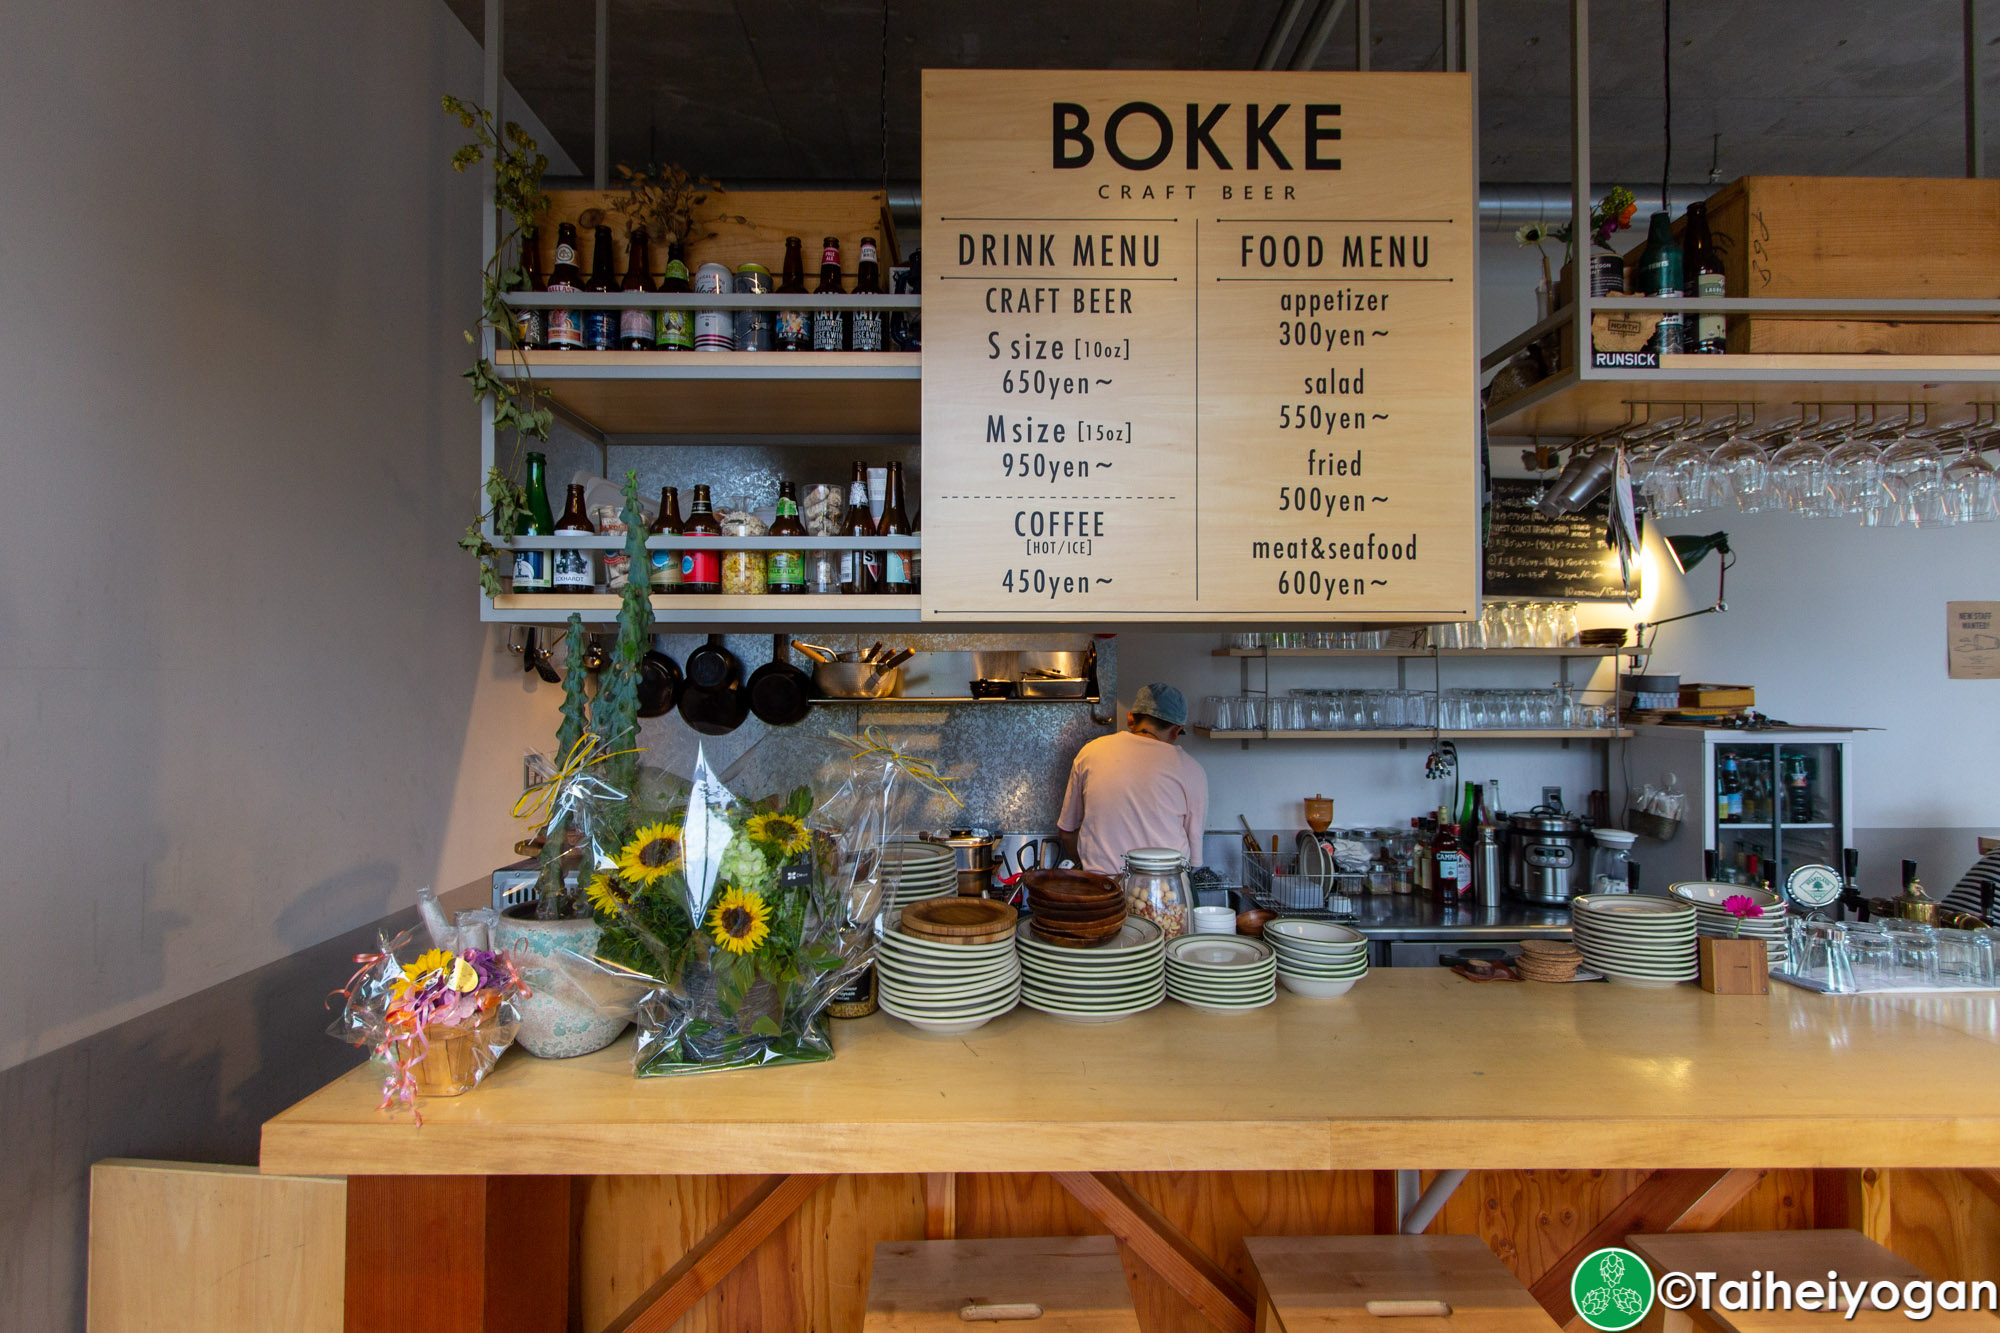 Bokke - Interior - Bar Counter